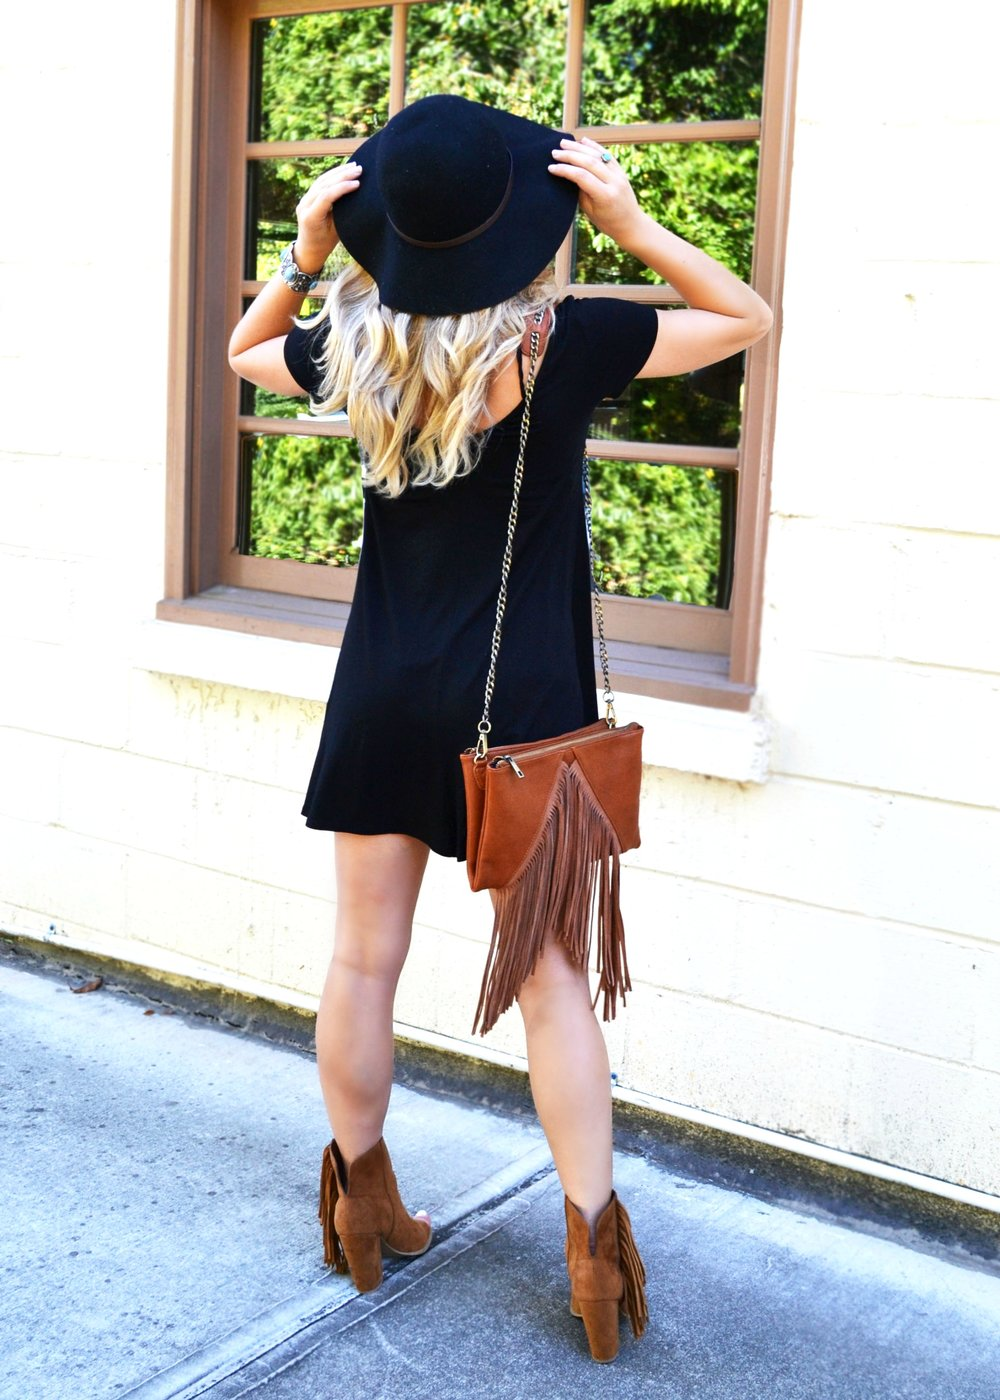 Featuring:  F  or Elyse Swing Dress  //   For Elyse Fringe Bag  //  Nordstrom Rack Fall Hat  //  DV For Target Peep Toe Booties